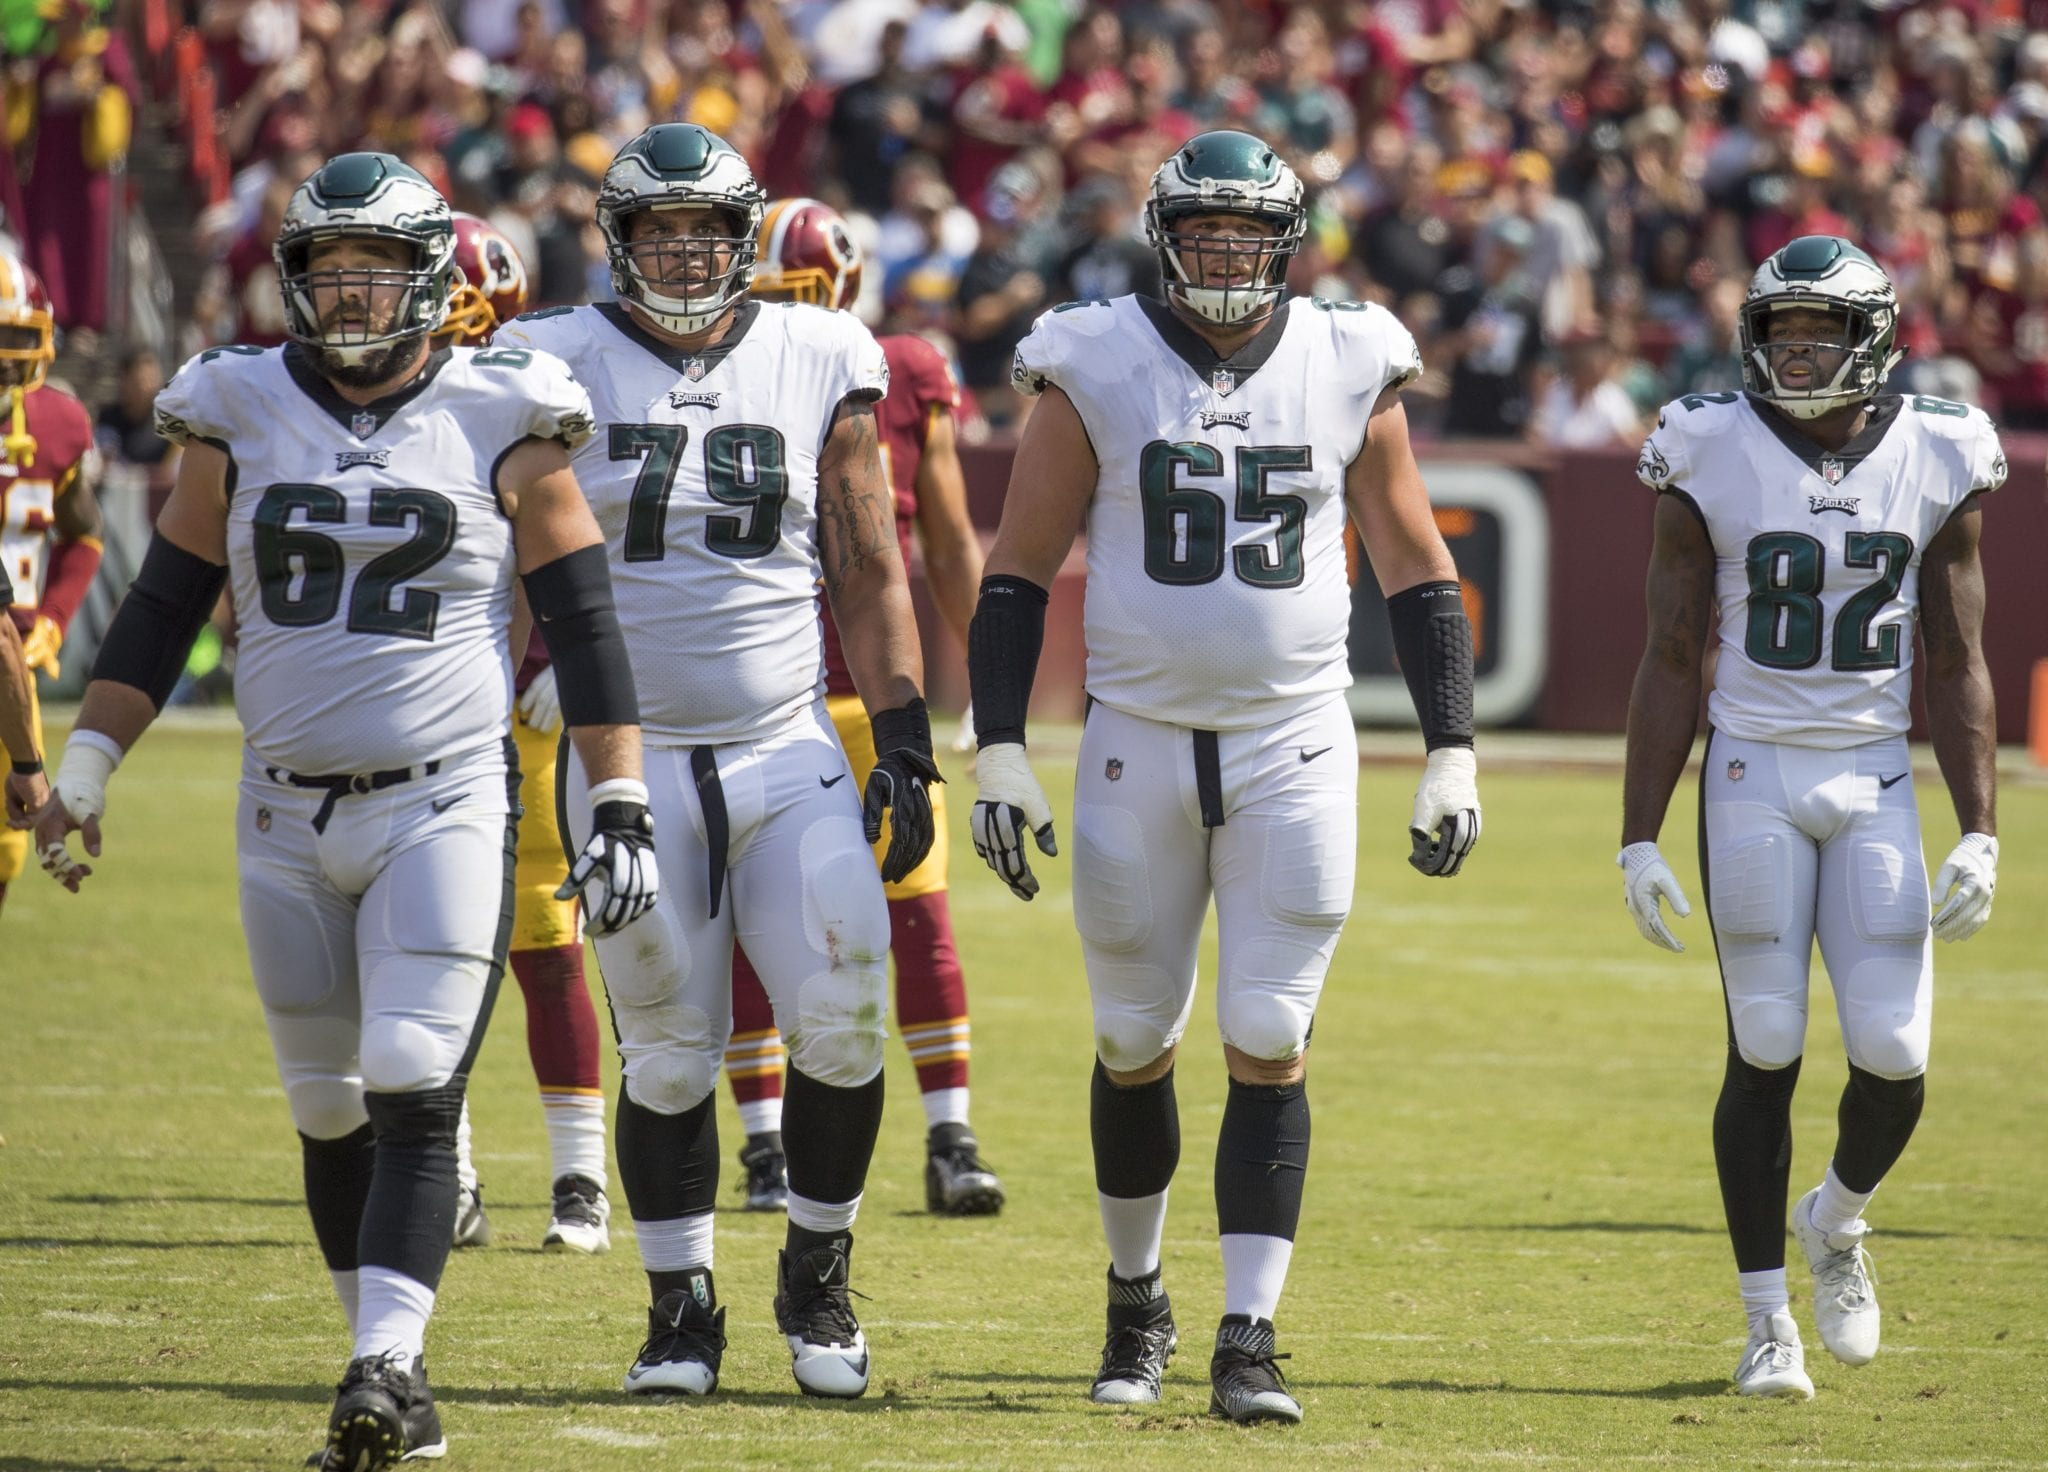 Brandon Brooks (number 79) before a game against the Washington Redskins. Photo from Wikimedia Commons.